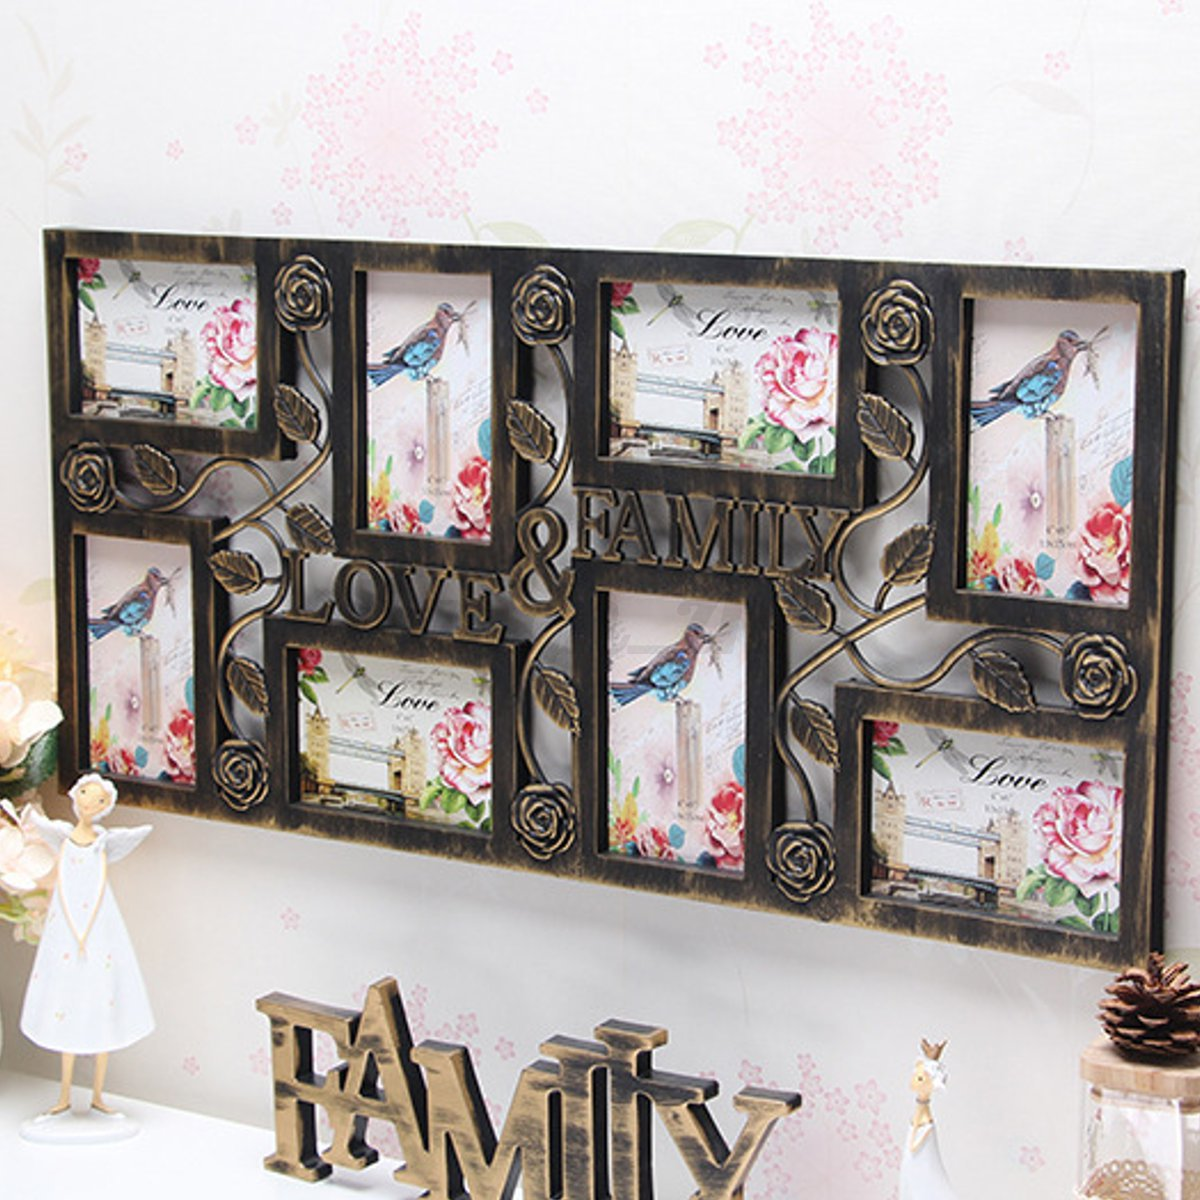 8 types 6 39 39 collage multi photo frames picture display wall hanging decor gifts ebay. Black Bedroom Furniture Sets. Home Design Ideas